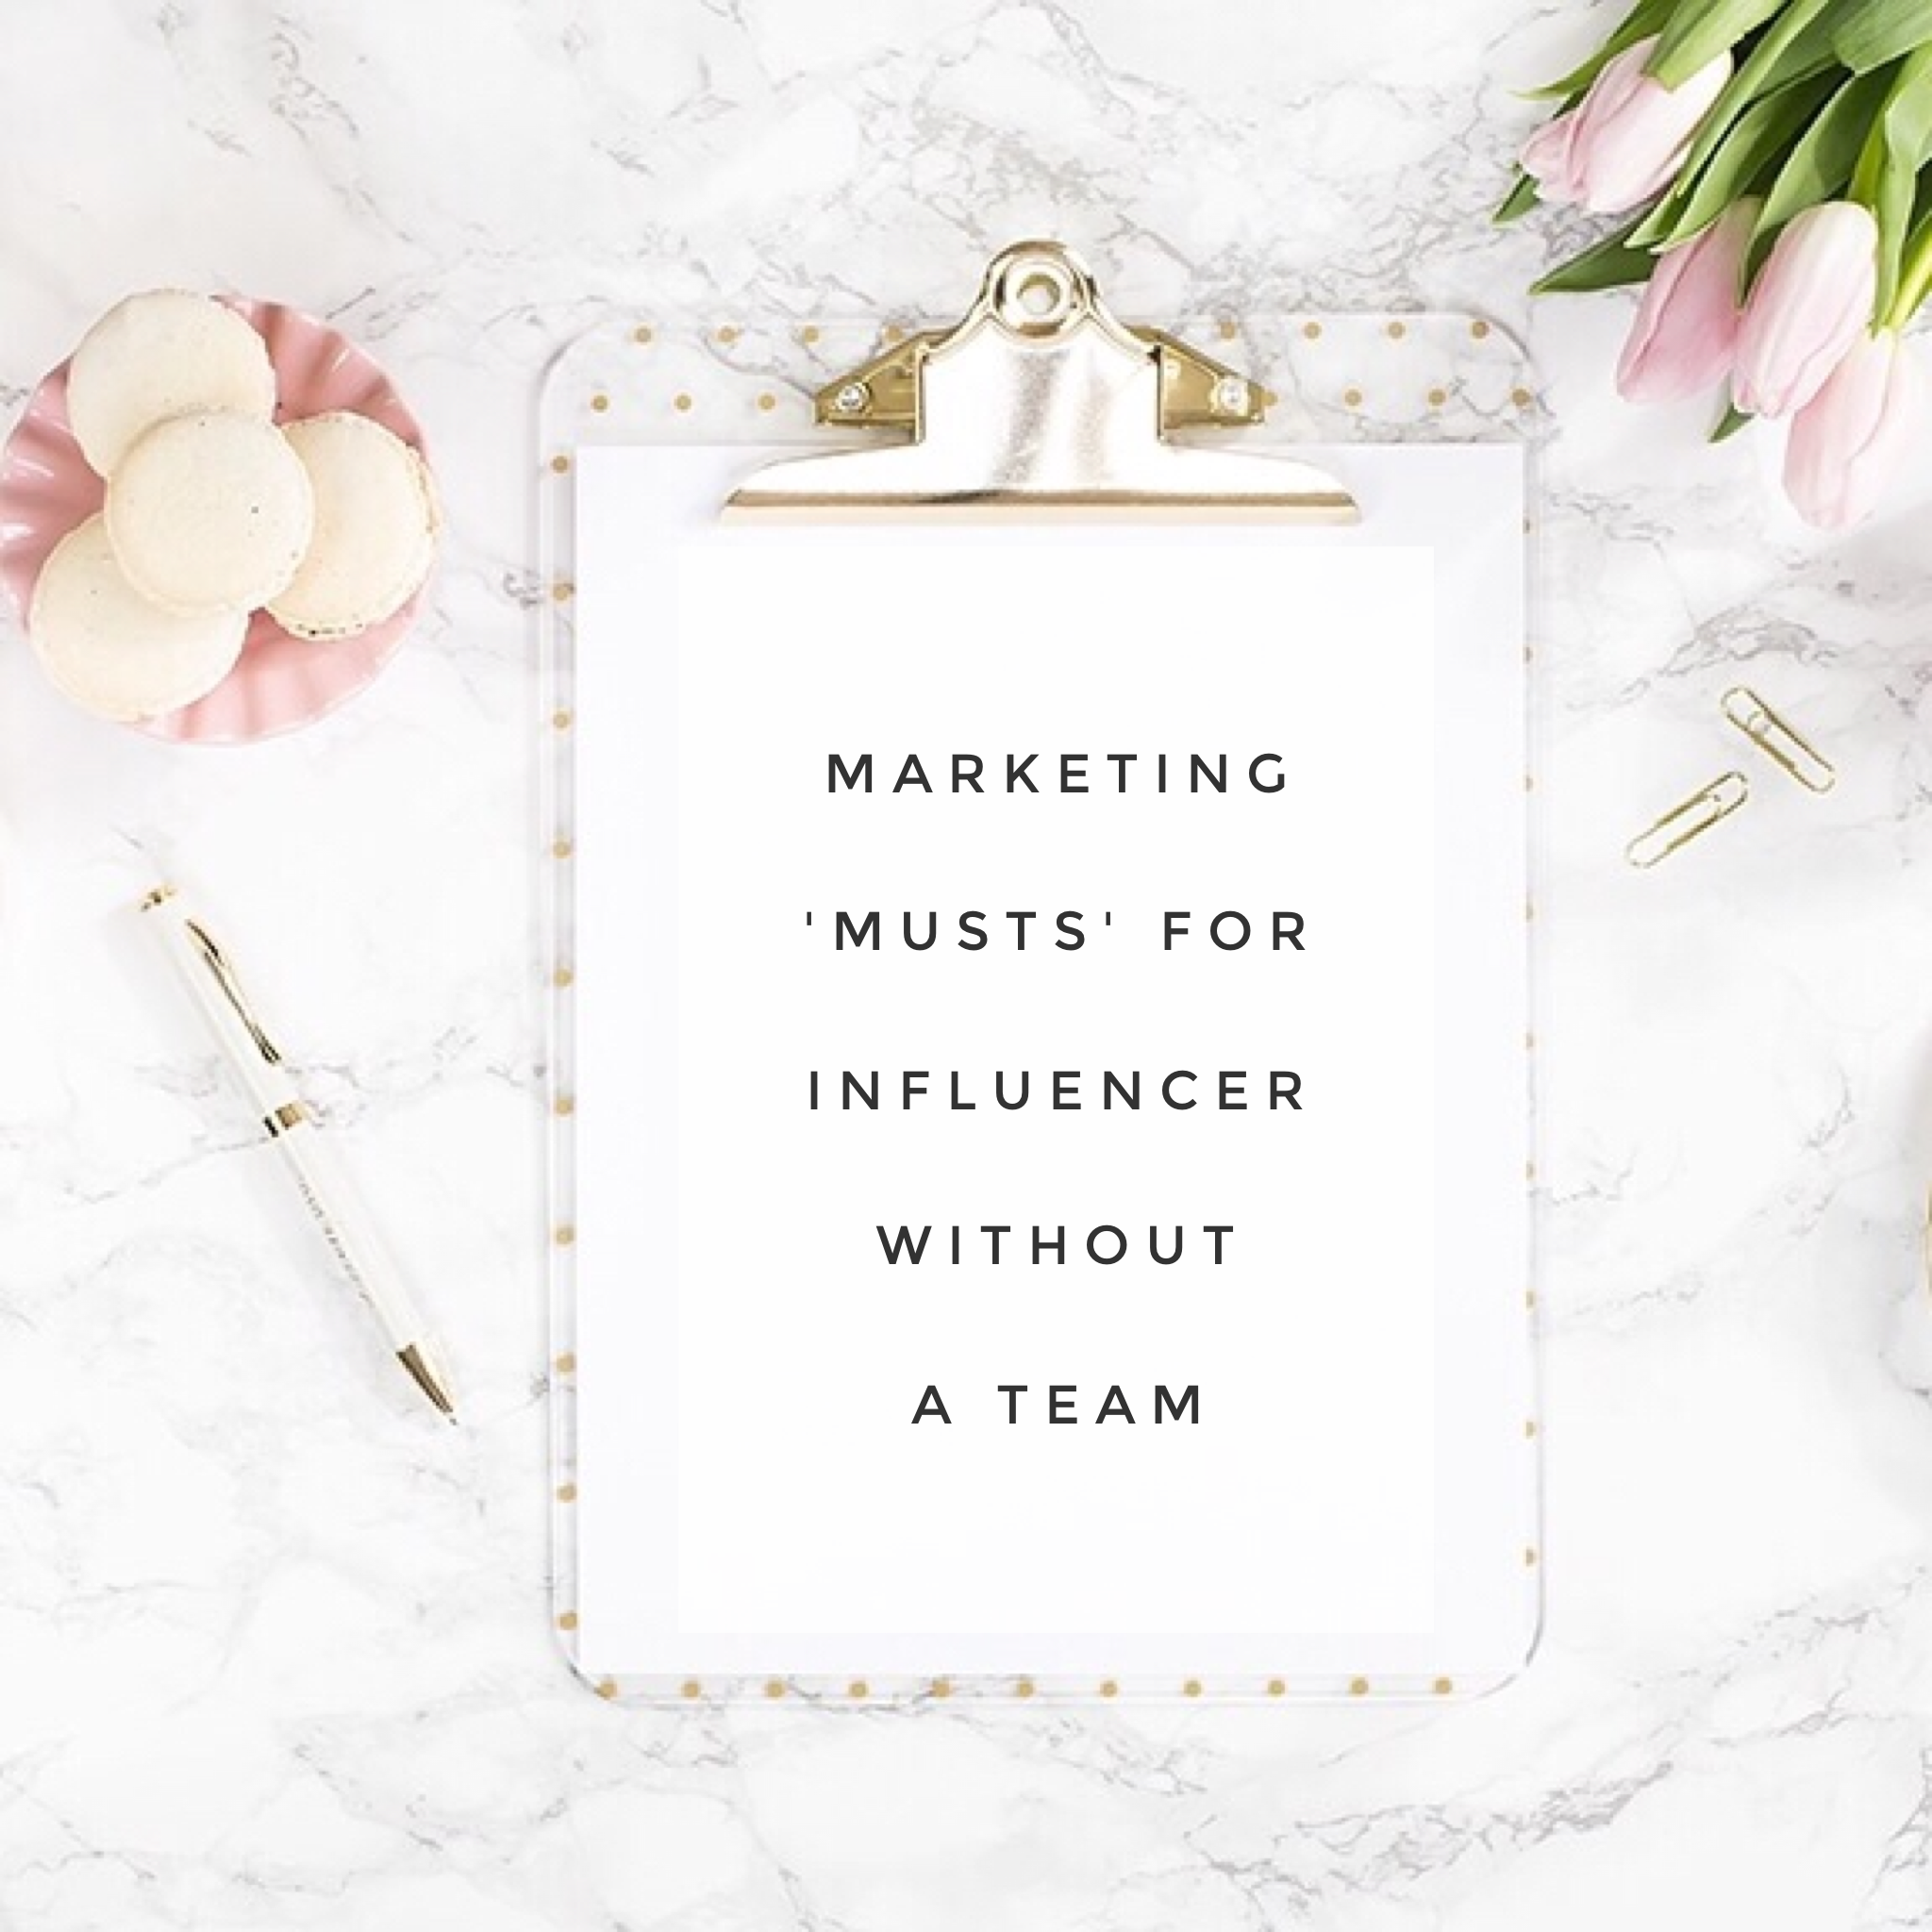 marketing-musts-for-influencer-without-a-team